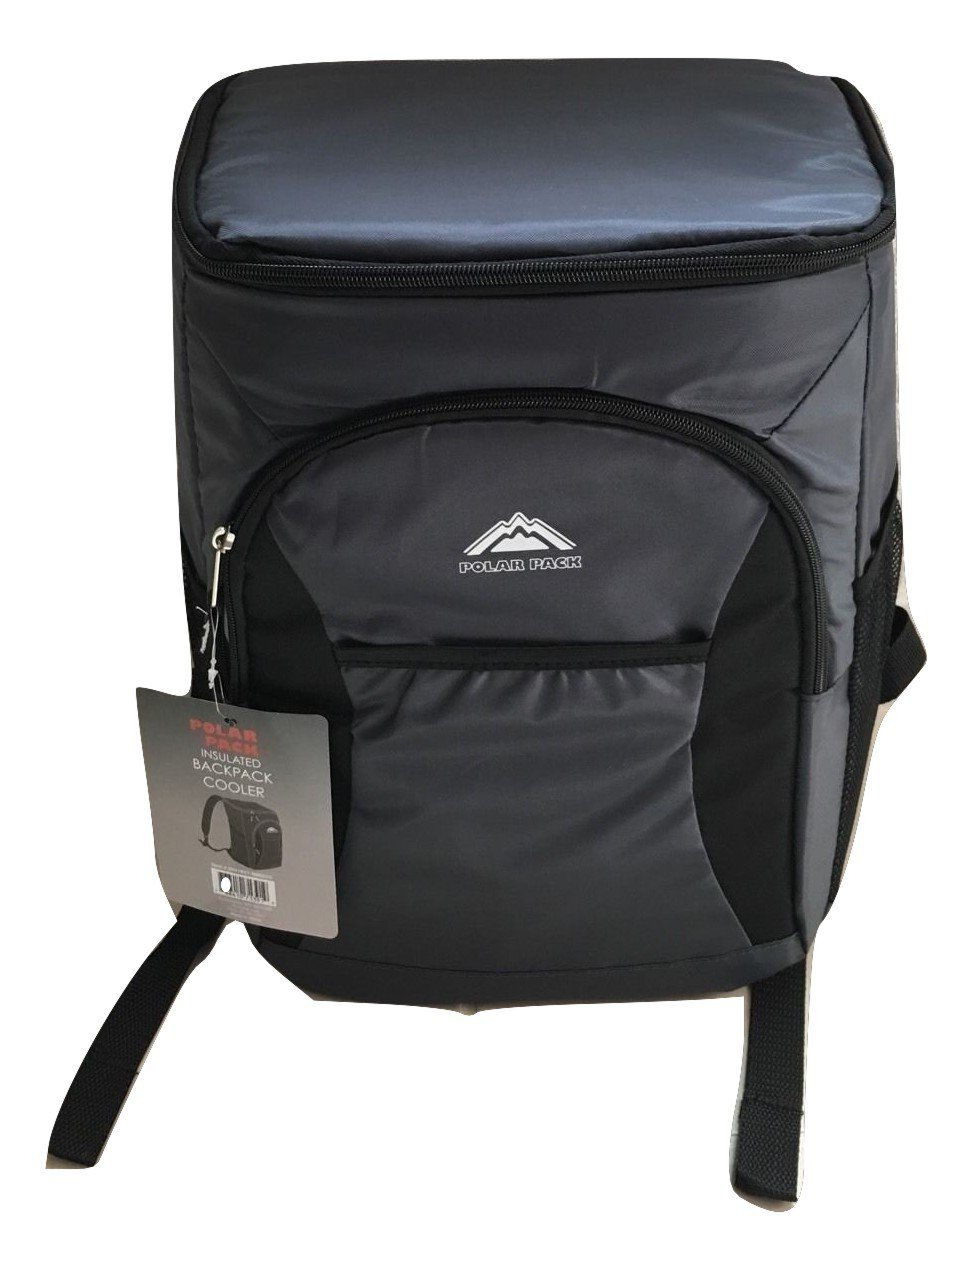 POLAR PACK INSULATED COOLER BACKPACK